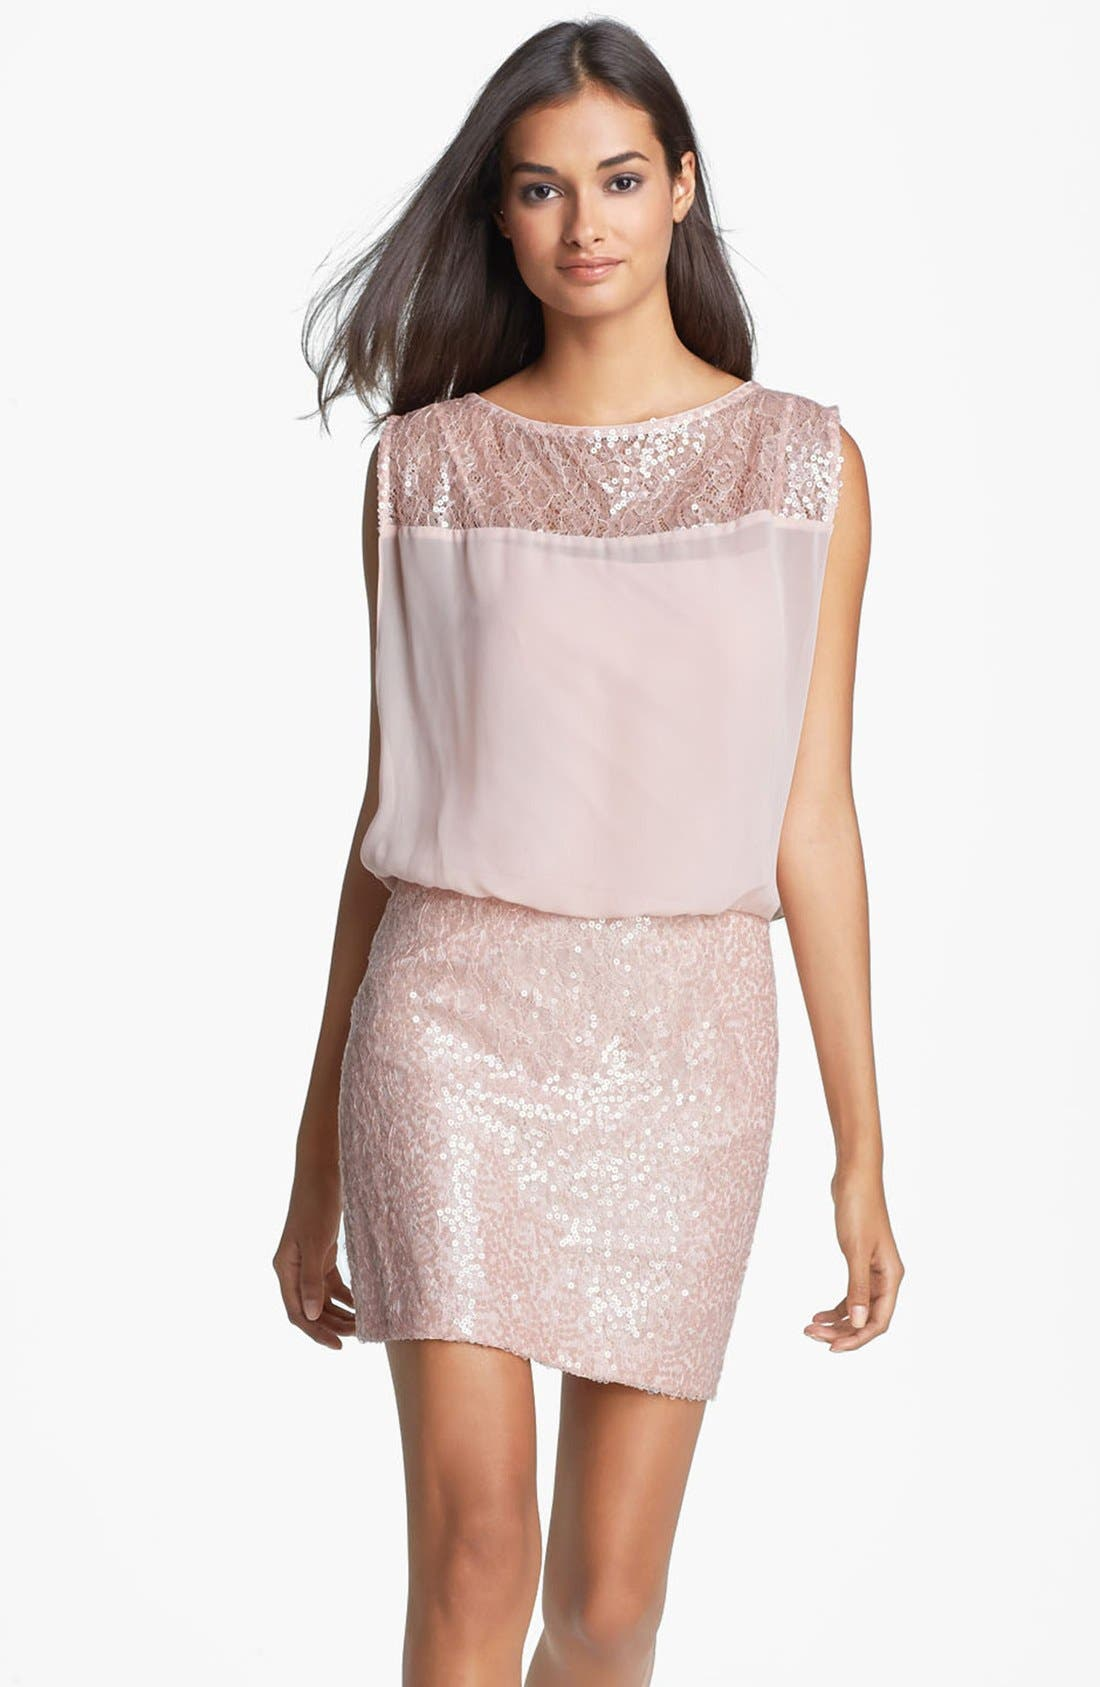 Alternate Image 1 Selected - Aidan Mattox Embellished Lace & Chiffon Blouson Dress (Online Only)